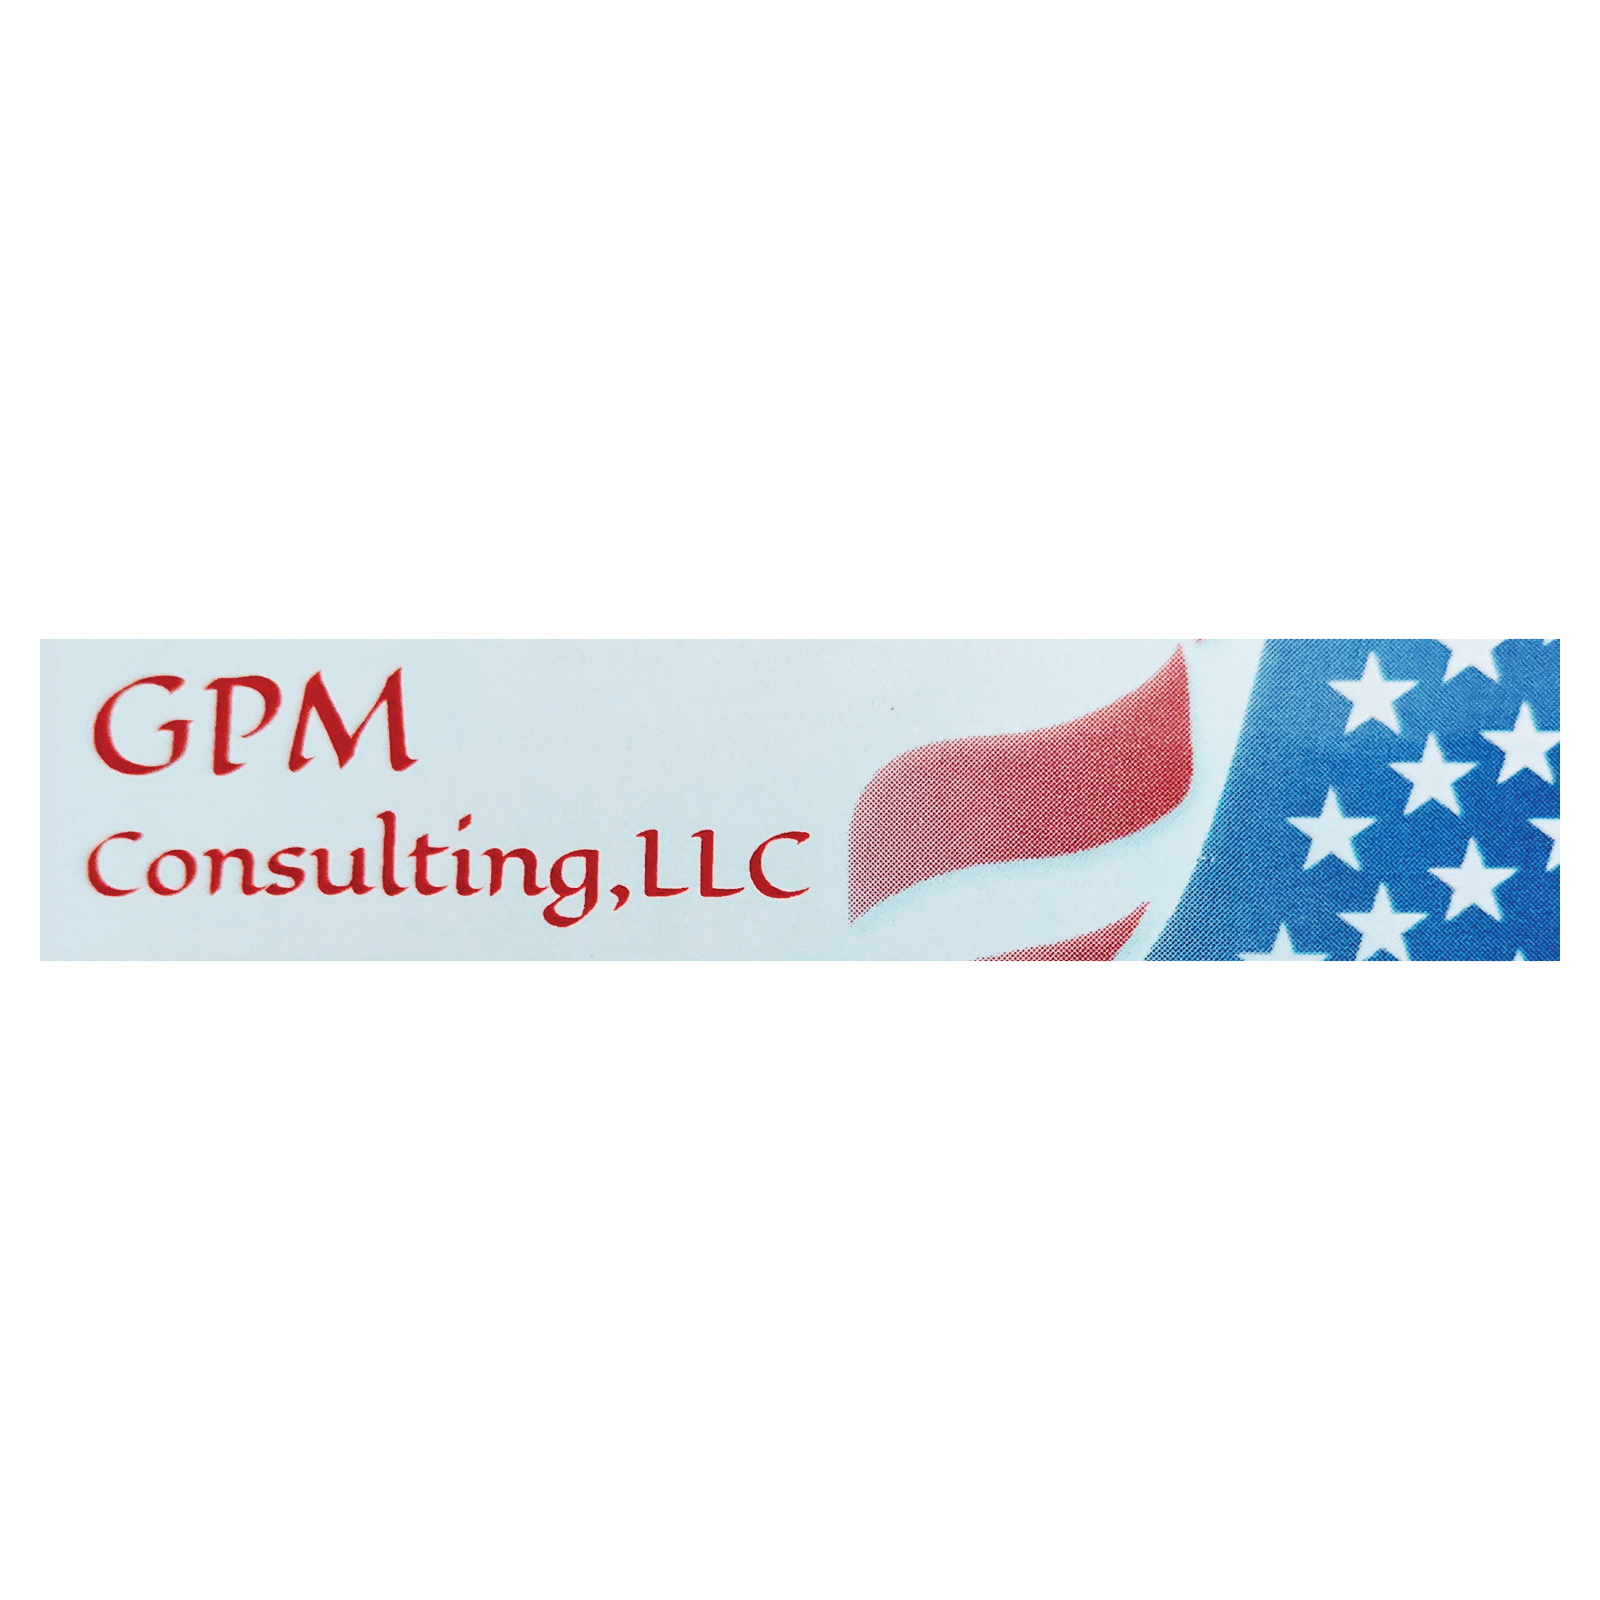 GPM Consulting, LLC